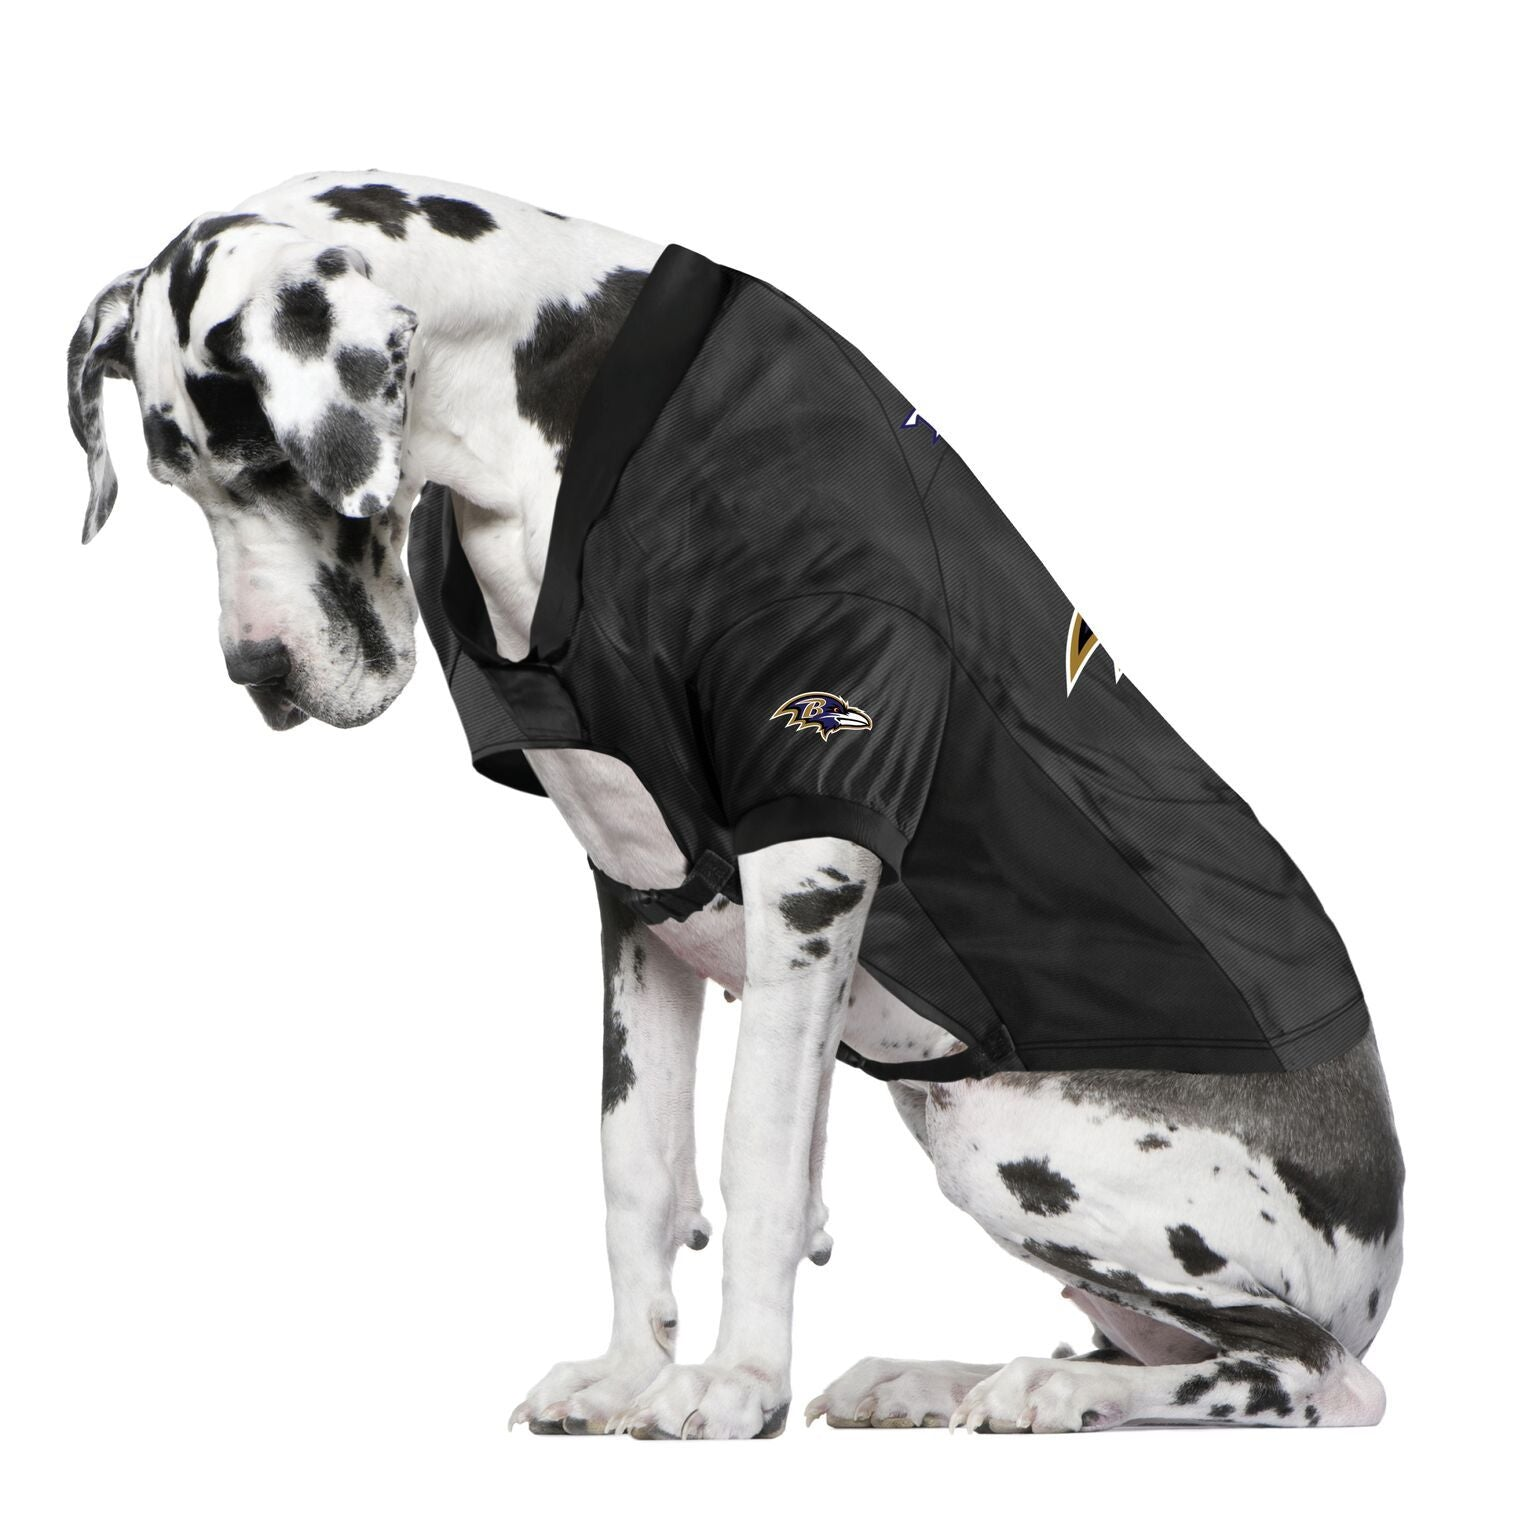 Ravens Fan Jersey For Your Dog